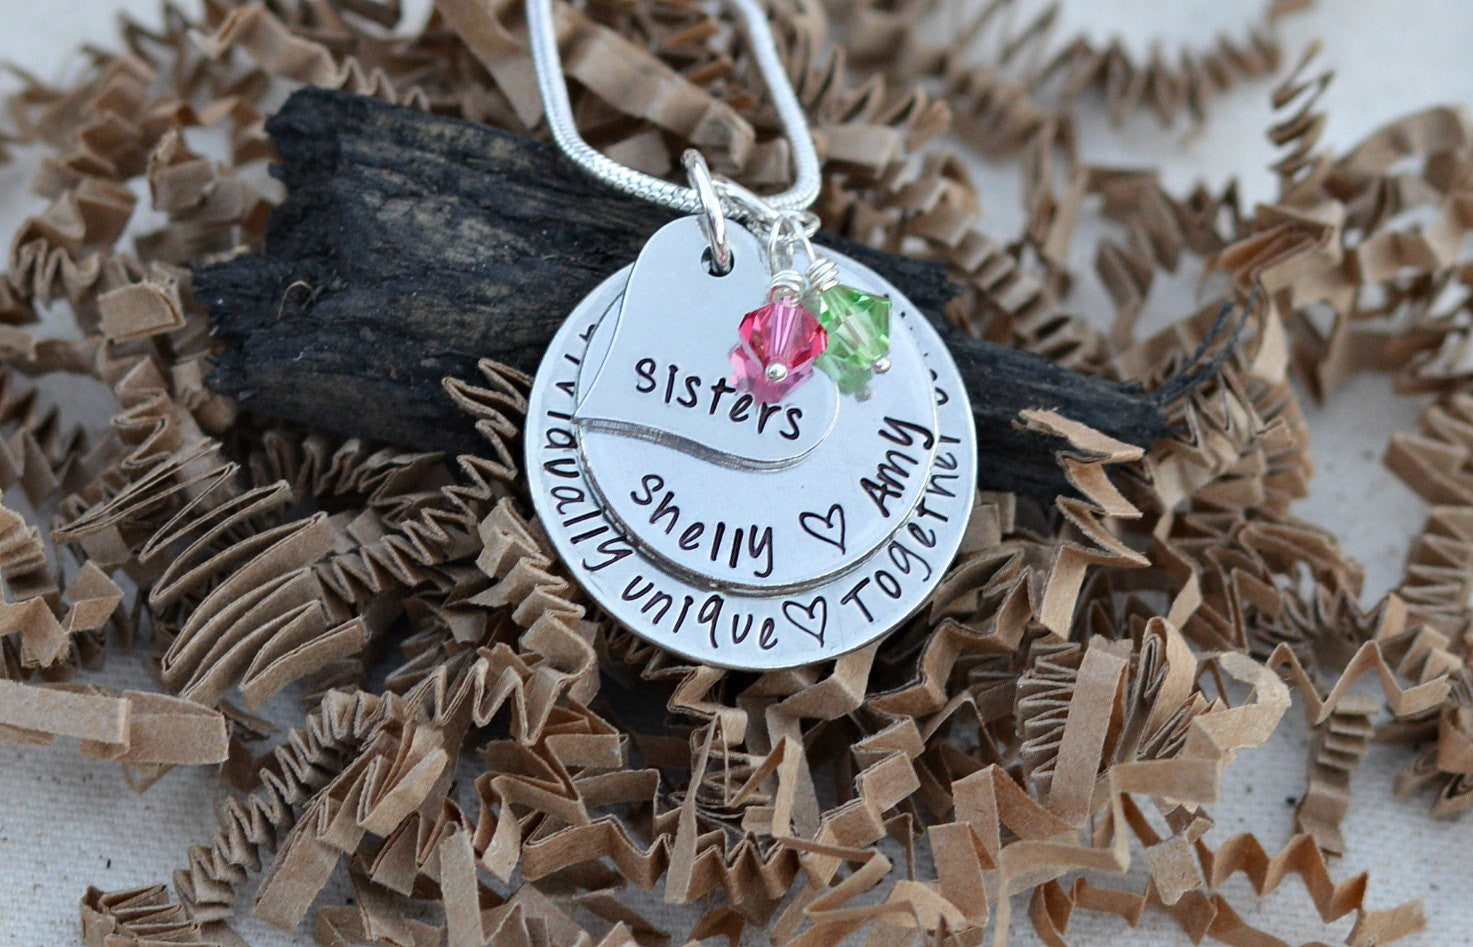 Christmas gifts for sister top selling items for sister big sister christmas gifts for sister top selling items for sister big sister gift sister jewelry sister birthday negle Choice Image